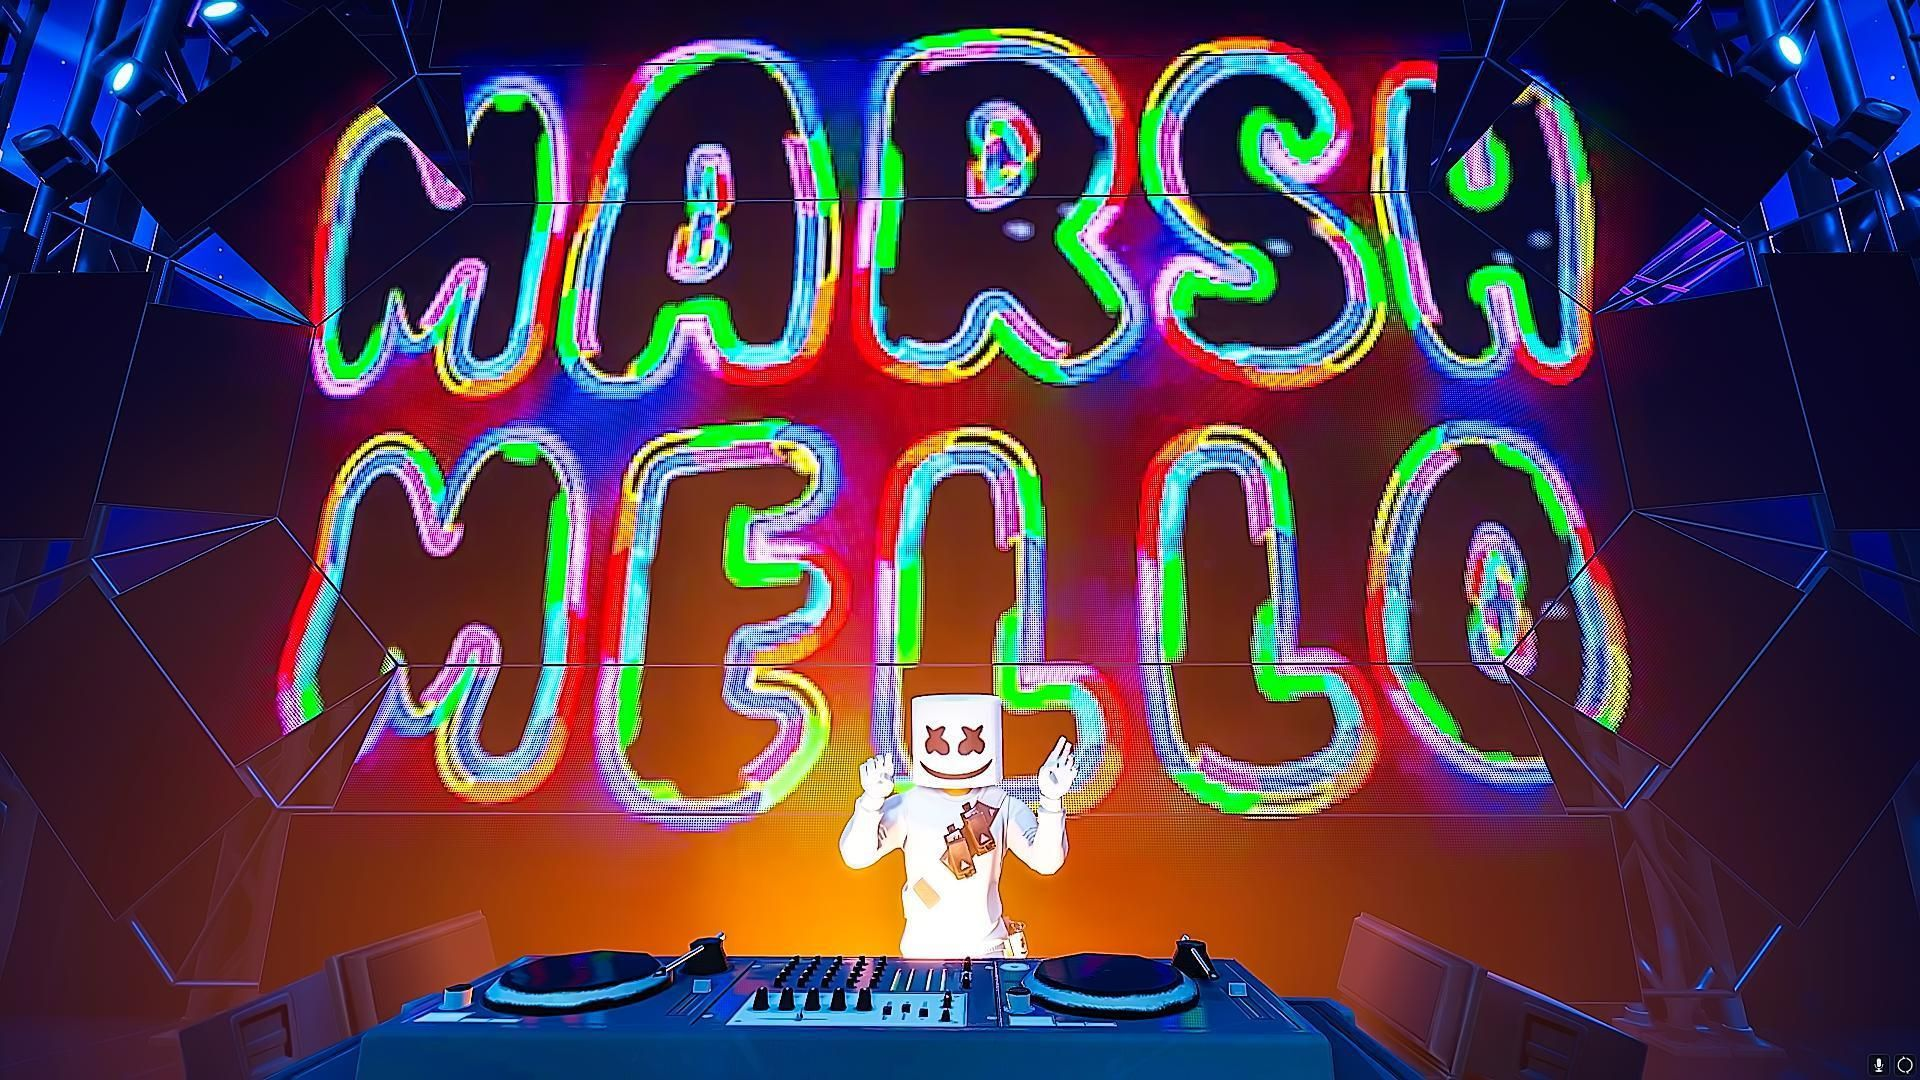 Fortnite Hd Marshmello Concert Wallpapers With Images Fortnite